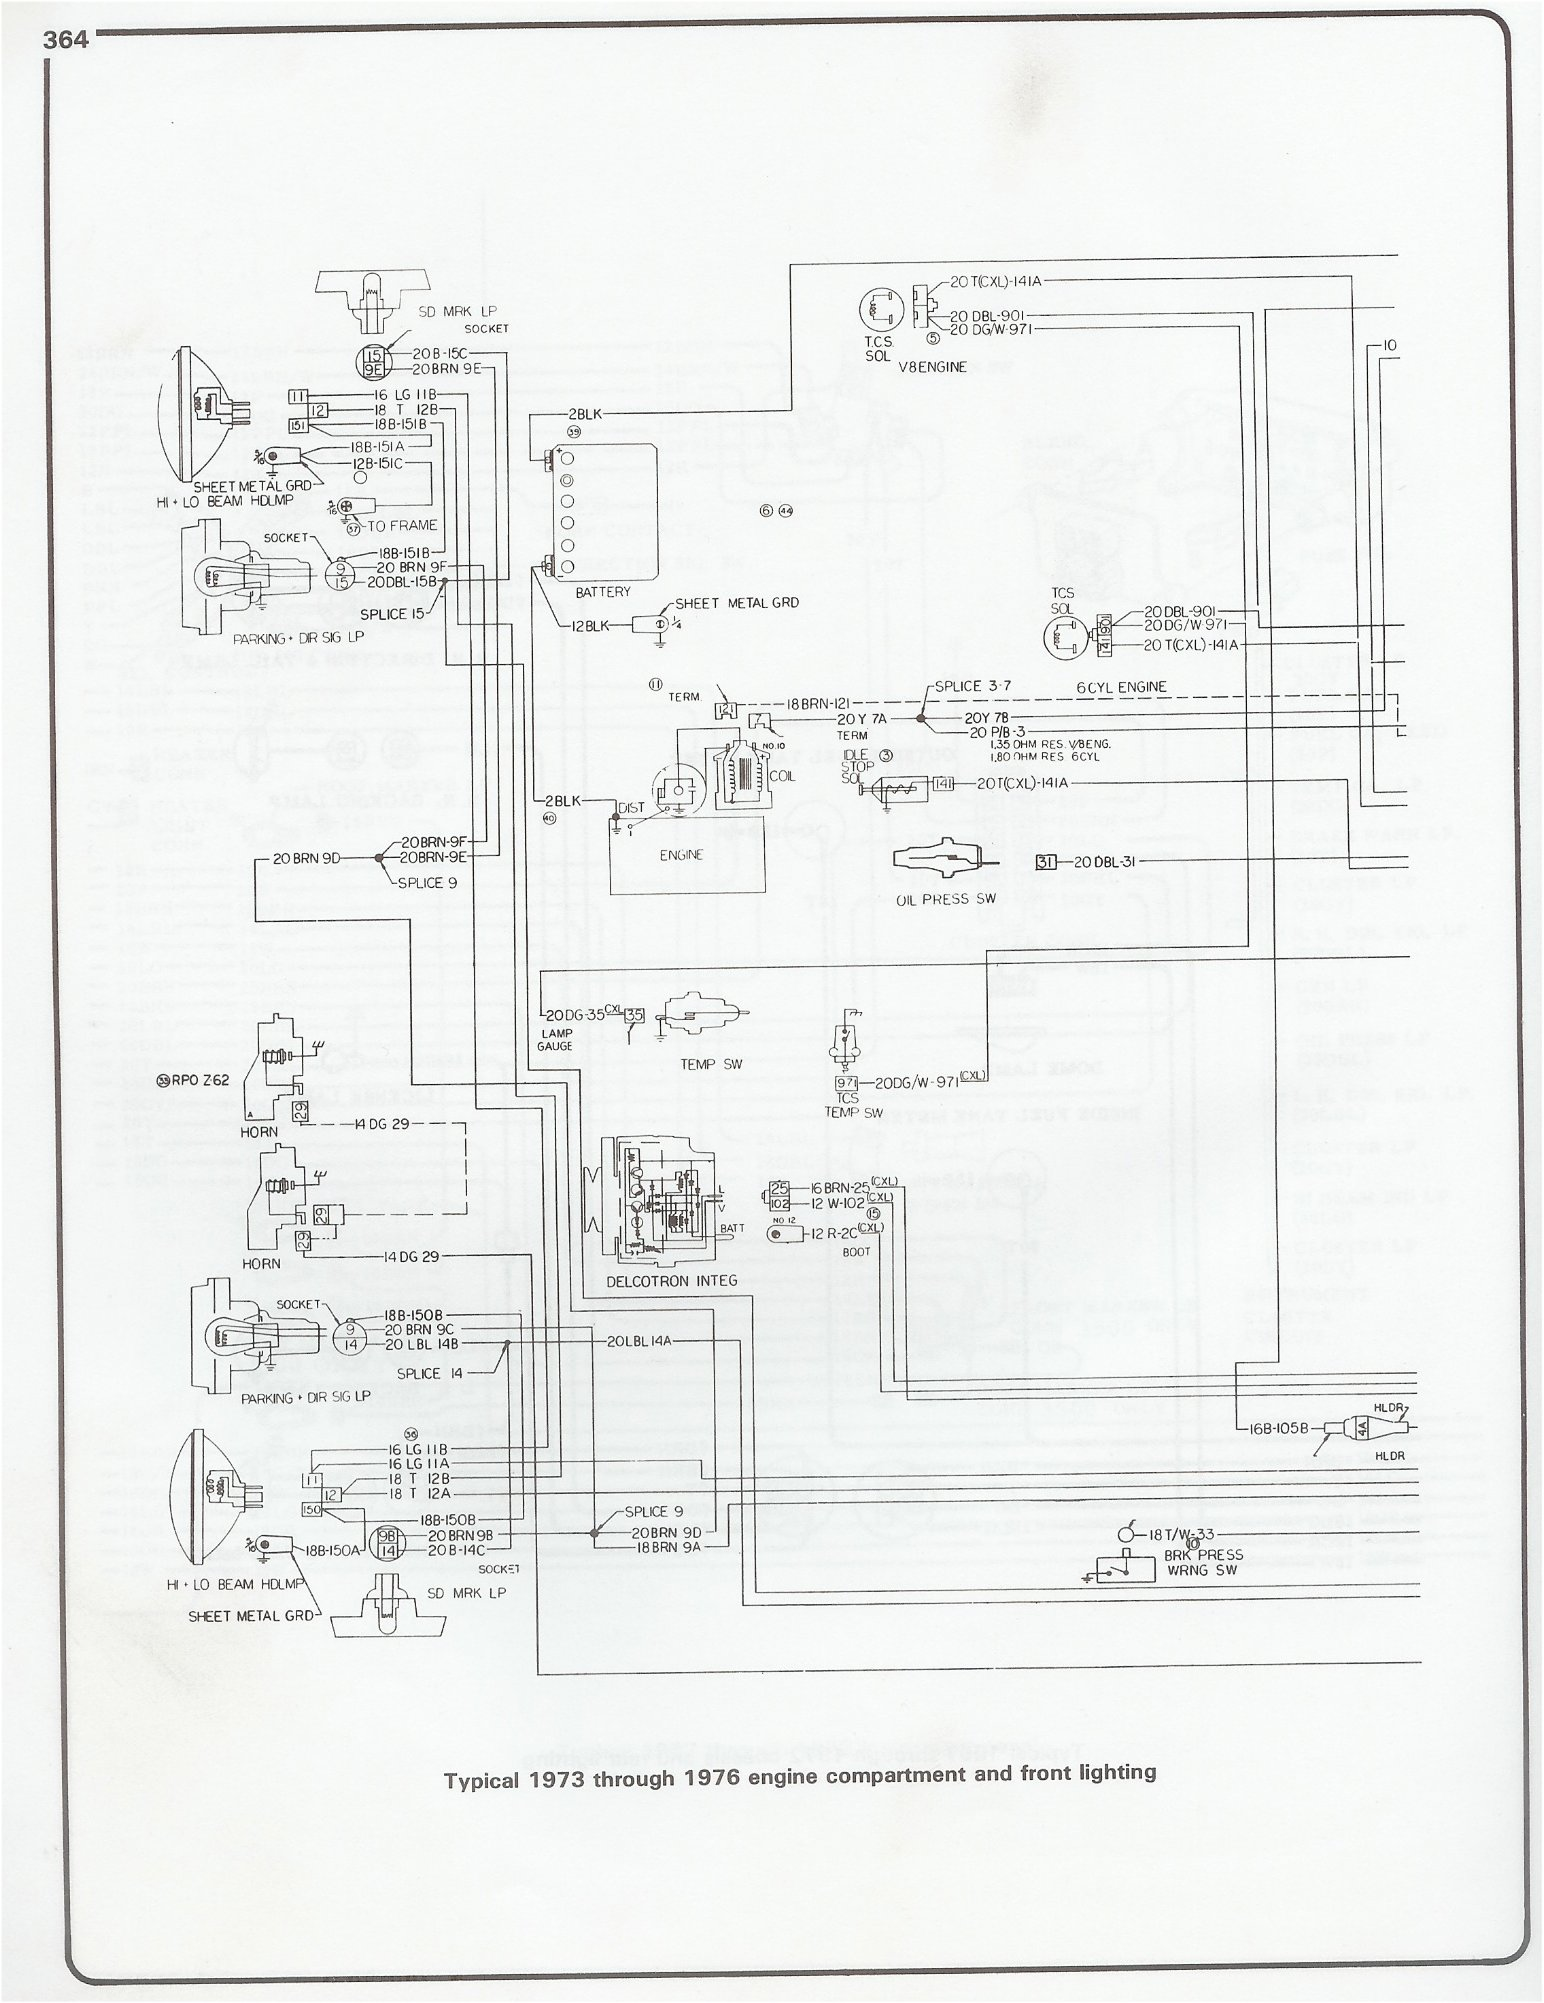 [WRG-7963] 1981 K20 Fuse Block Diagram